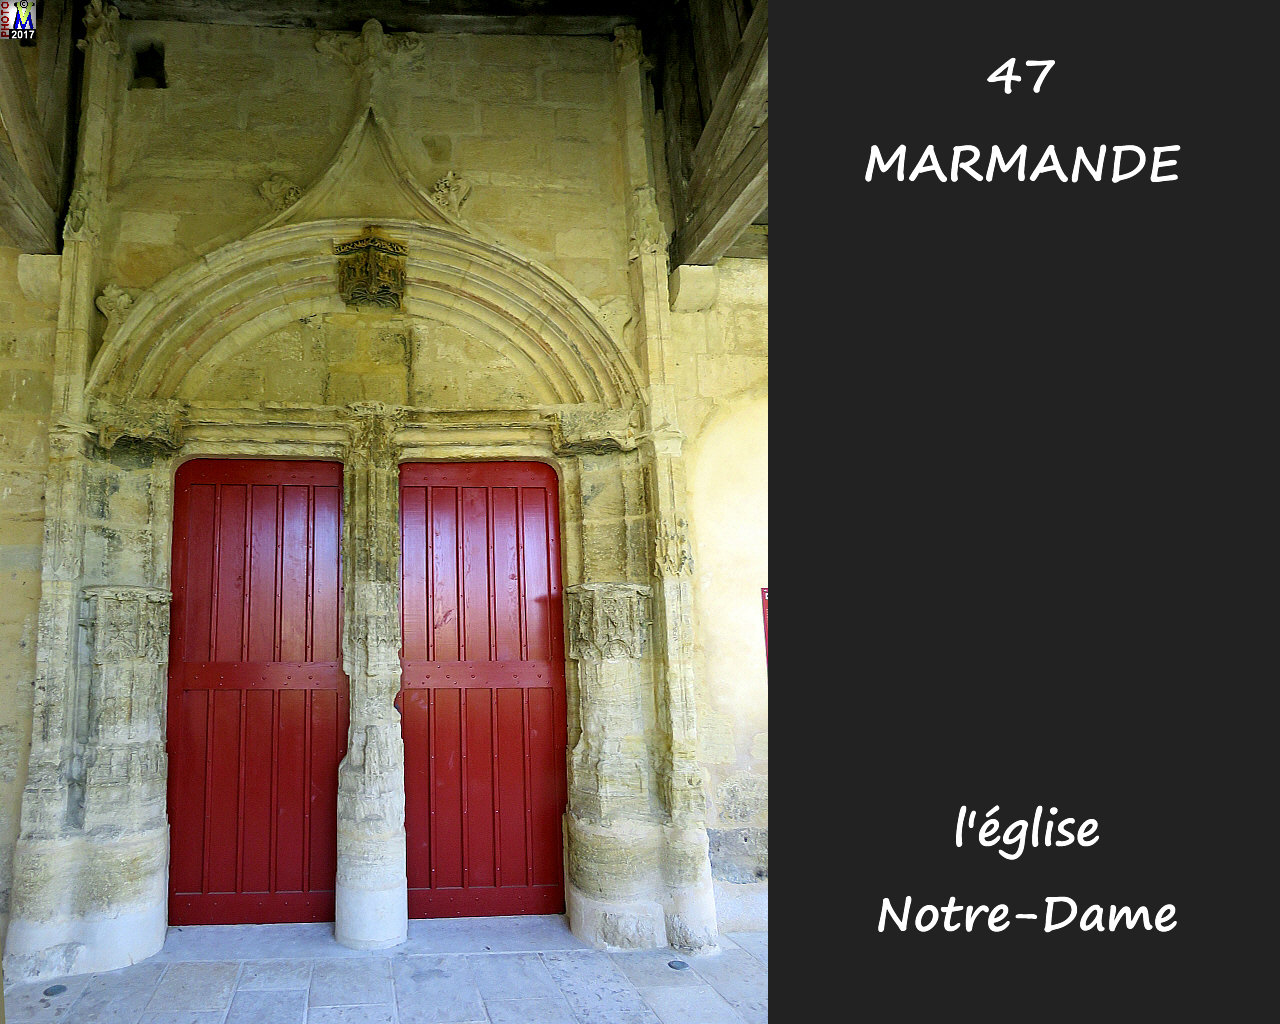 47MARMANDE_eglise_1014.JPG